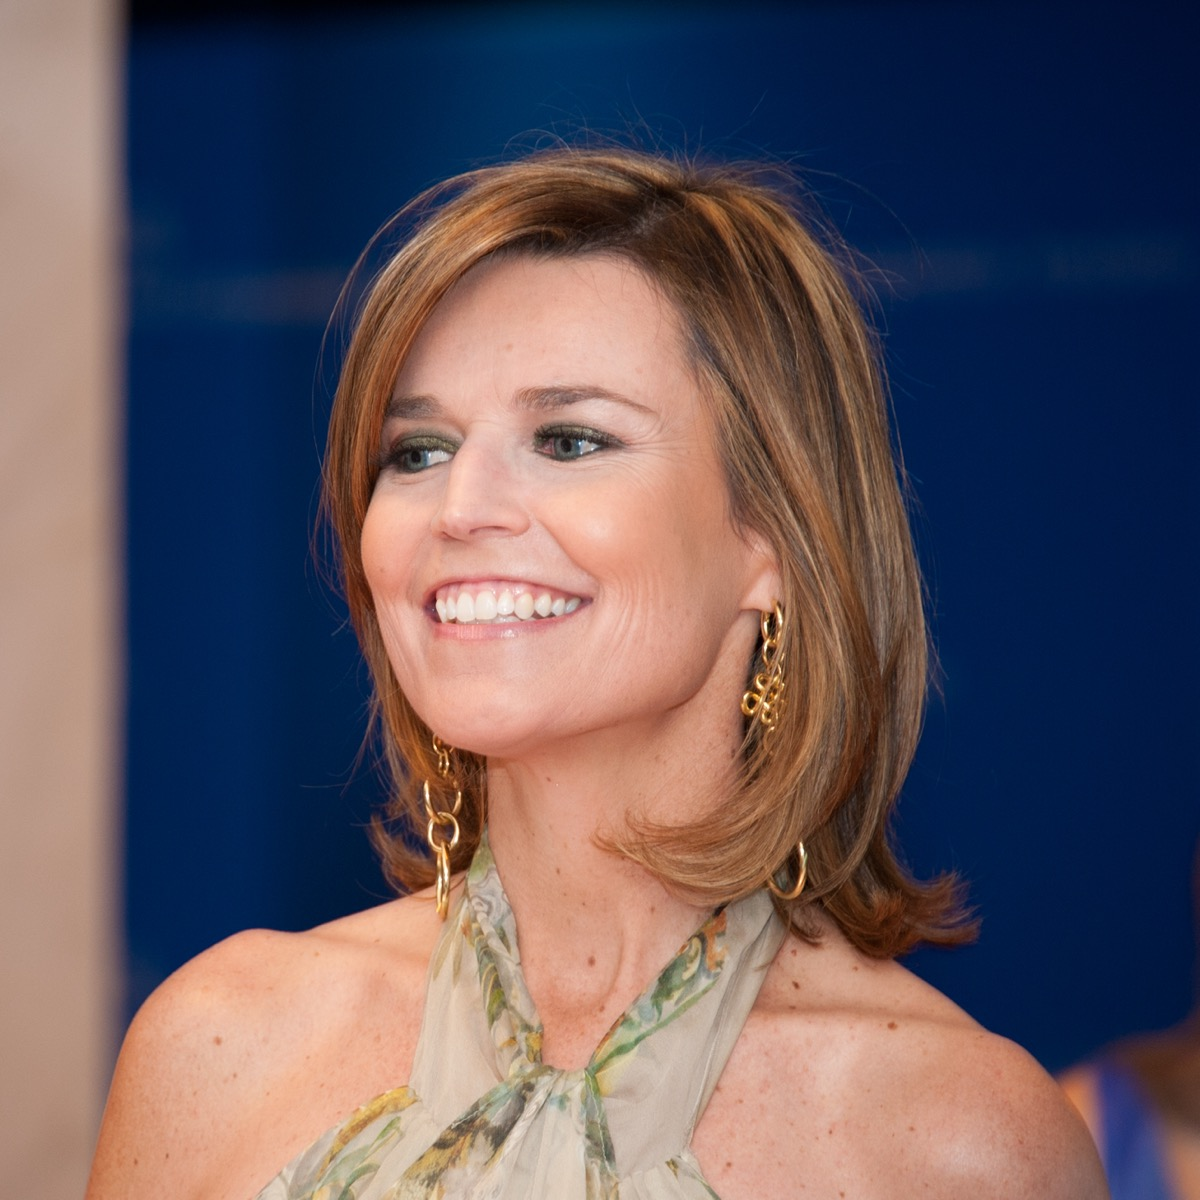 Savannah Guthrie at the White House Correspondents Dinner in 2013